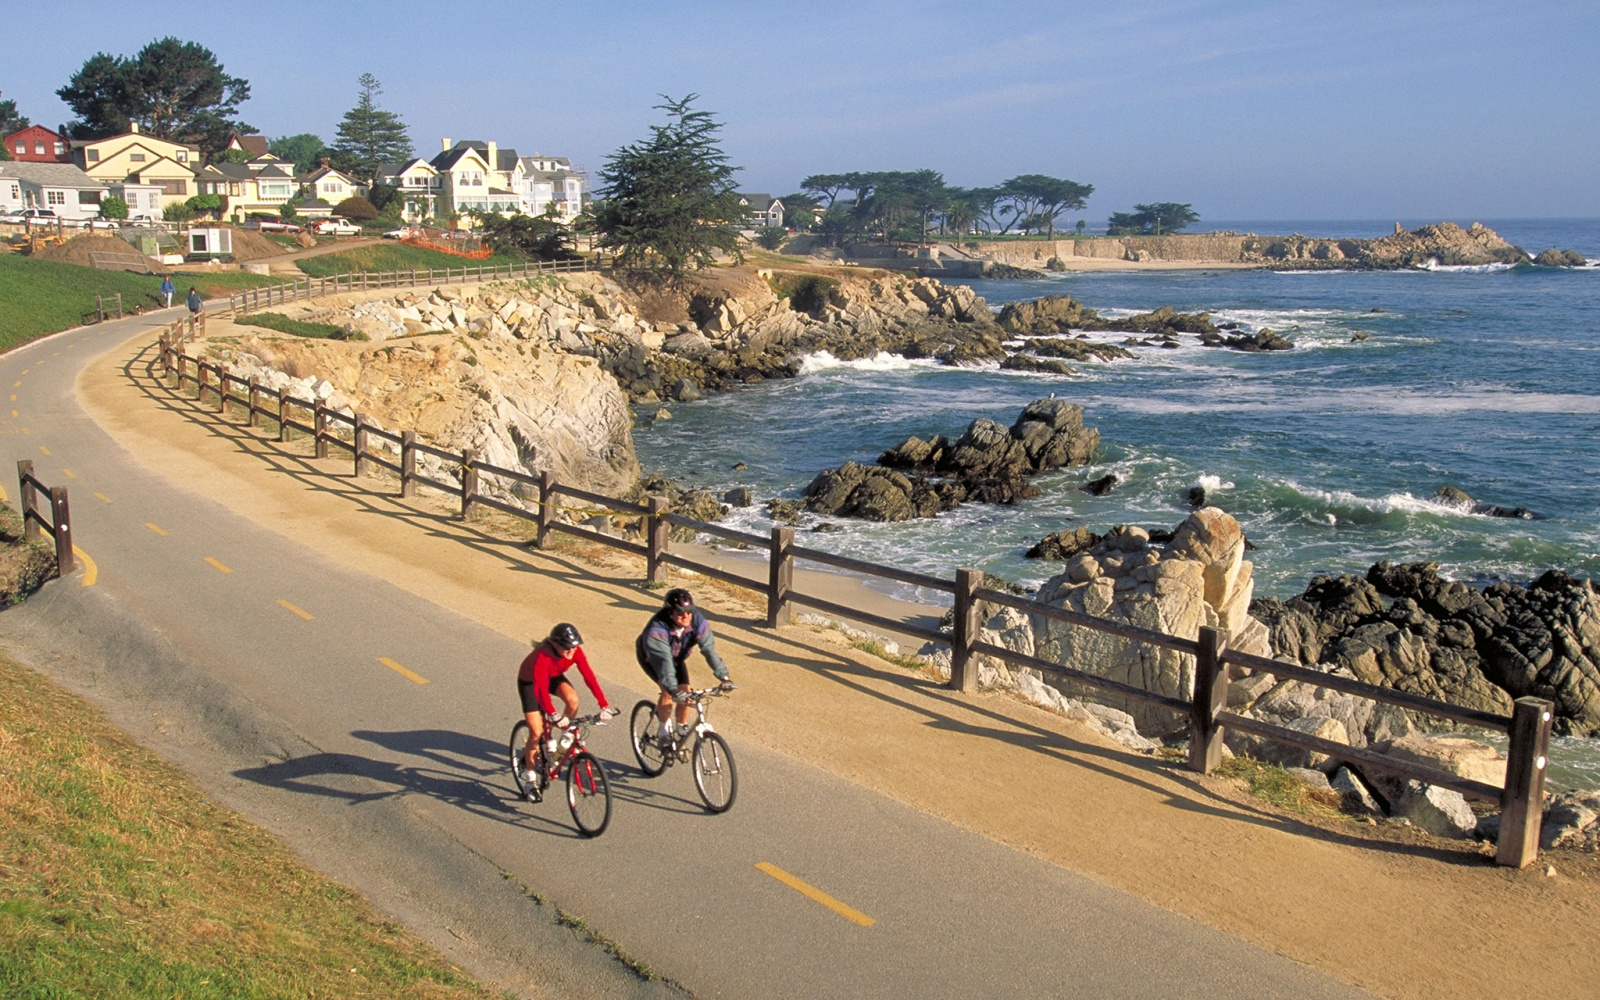 Pacific Grove California Small Beach Towns